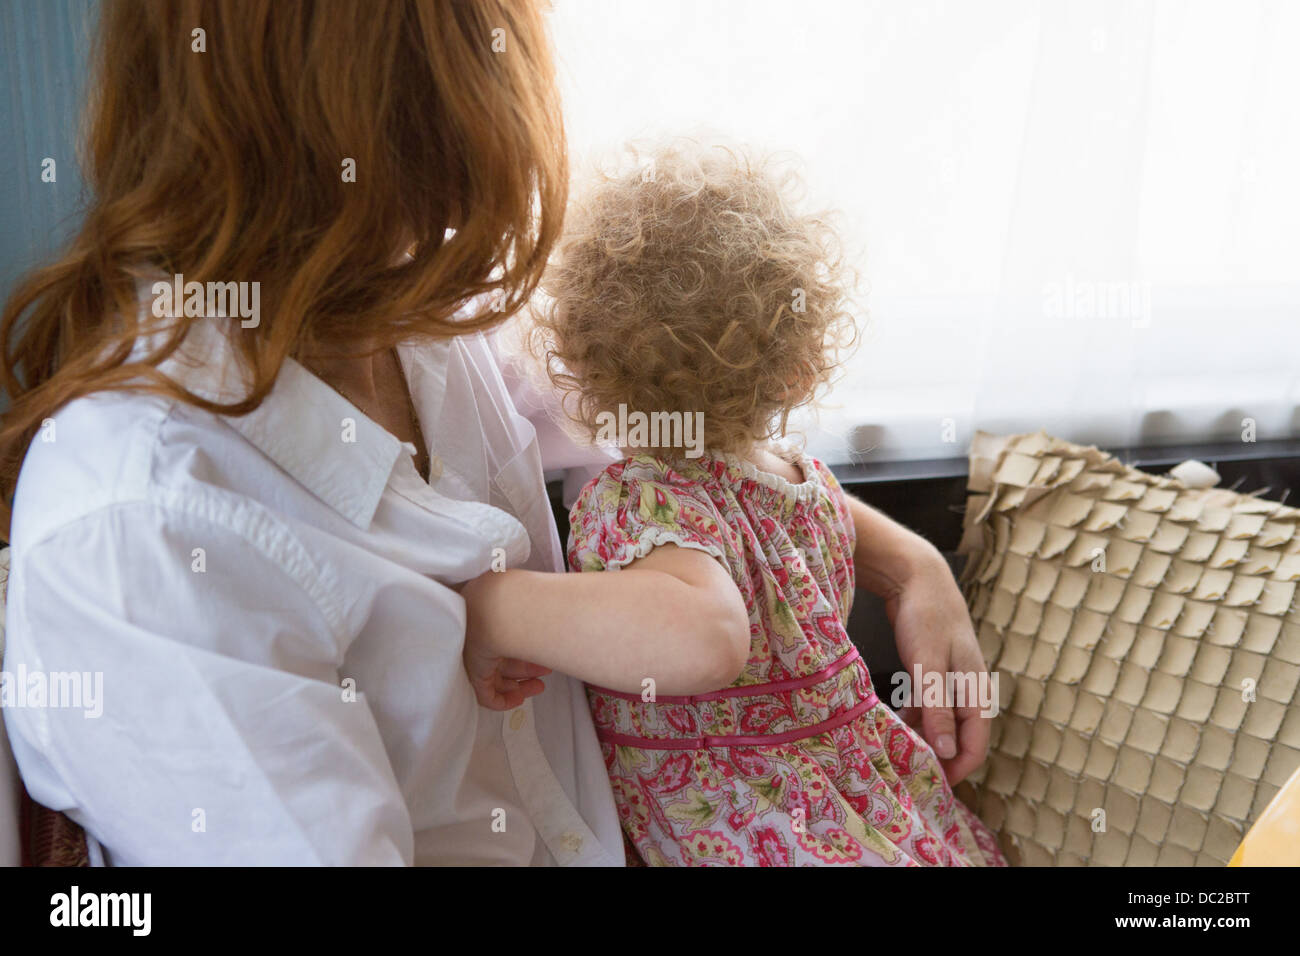 Mother & child looking out window - Stock Image